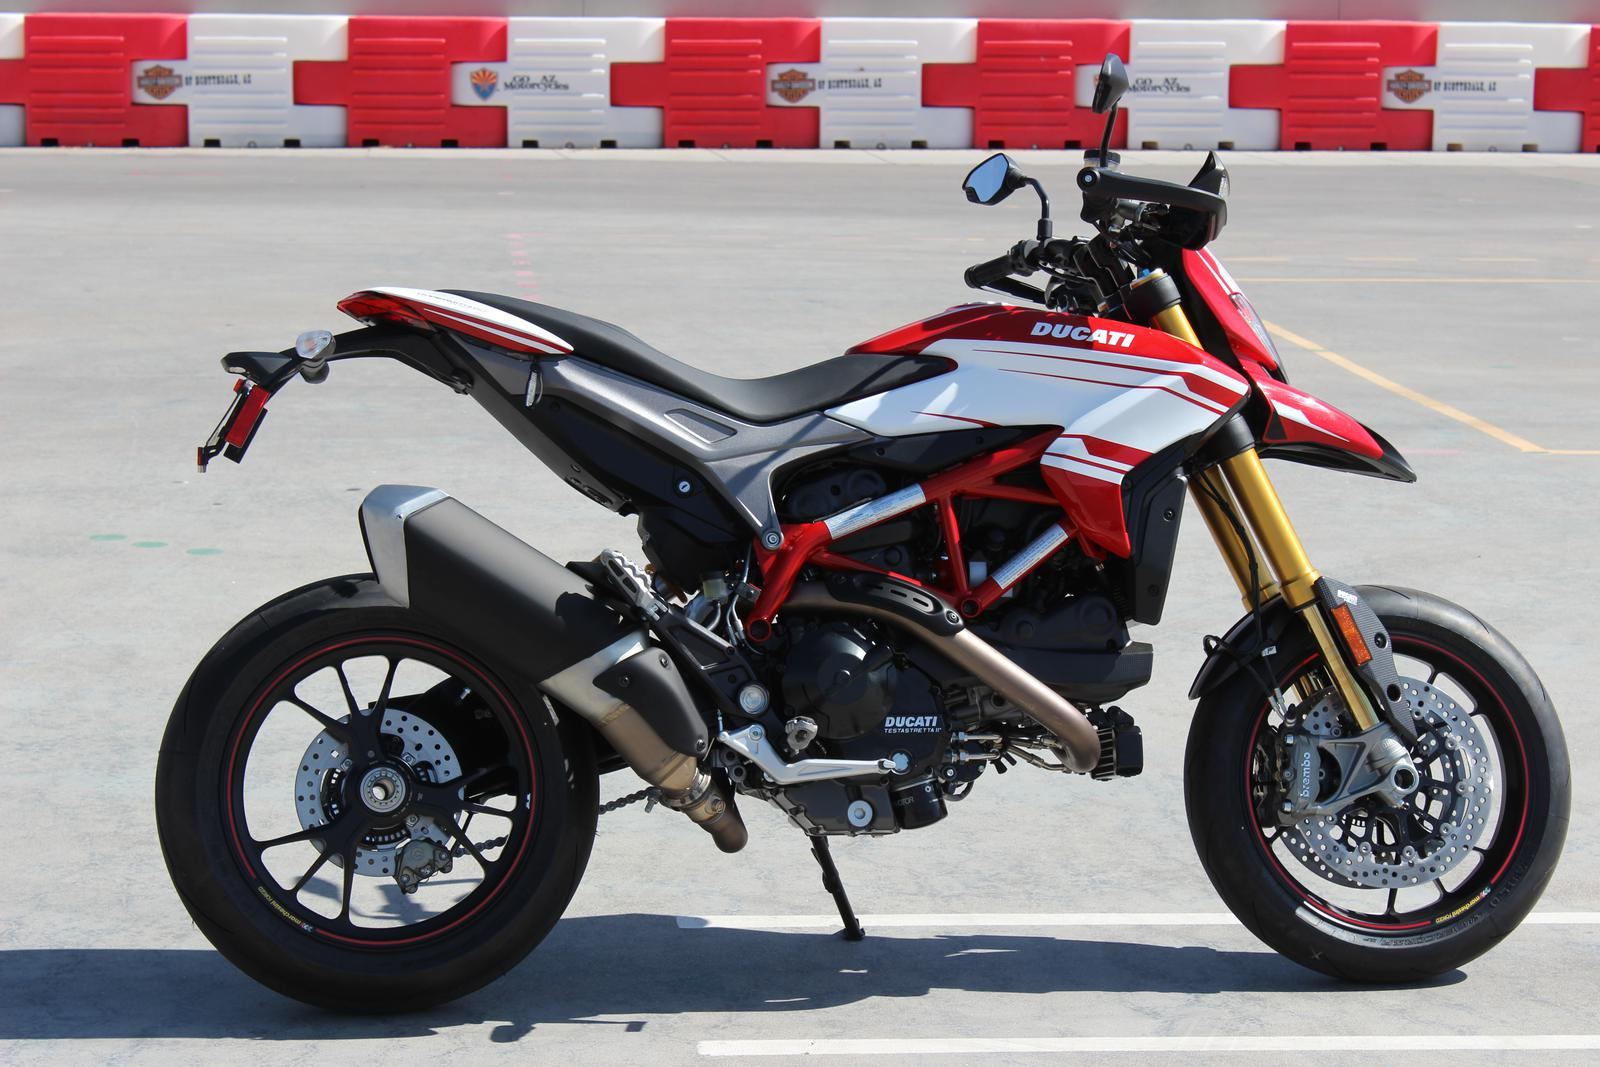 2017 ducati hypermotard 939 sp for sale in scottsdale, az | go az